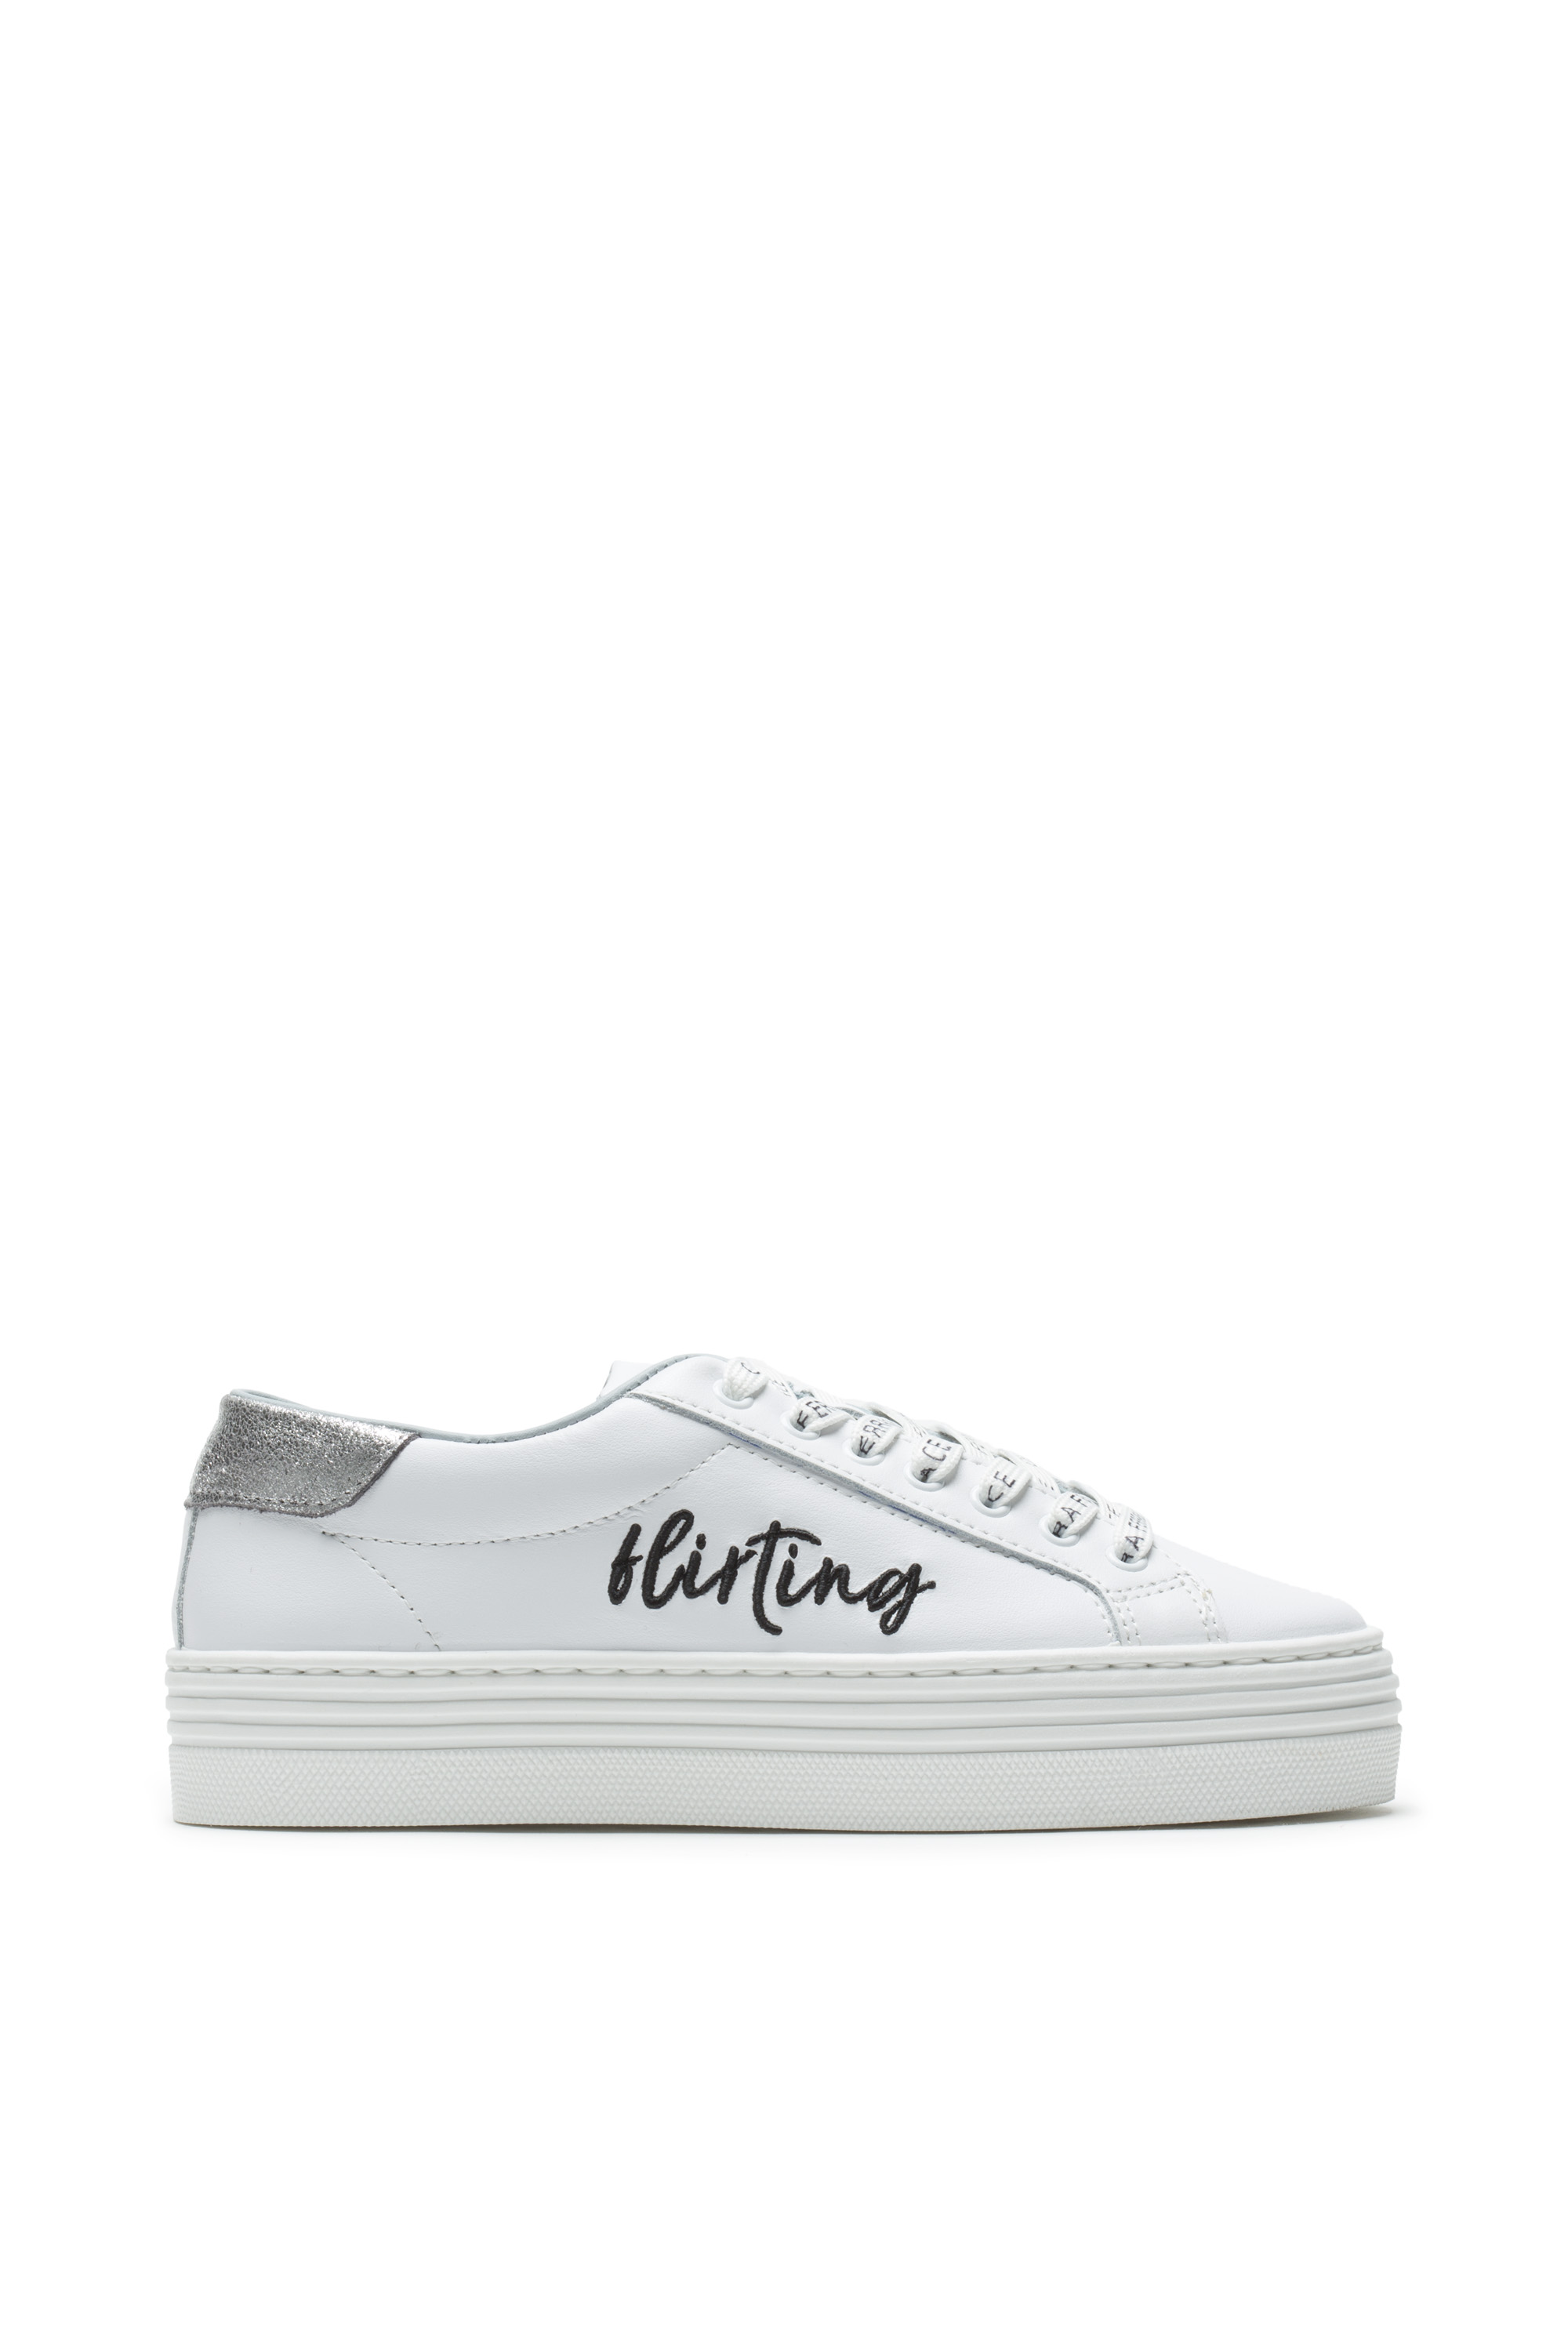 separation shoes 7209f 5fadd Sneakers CHIARA FERRAGNI CF1920-AWHITE